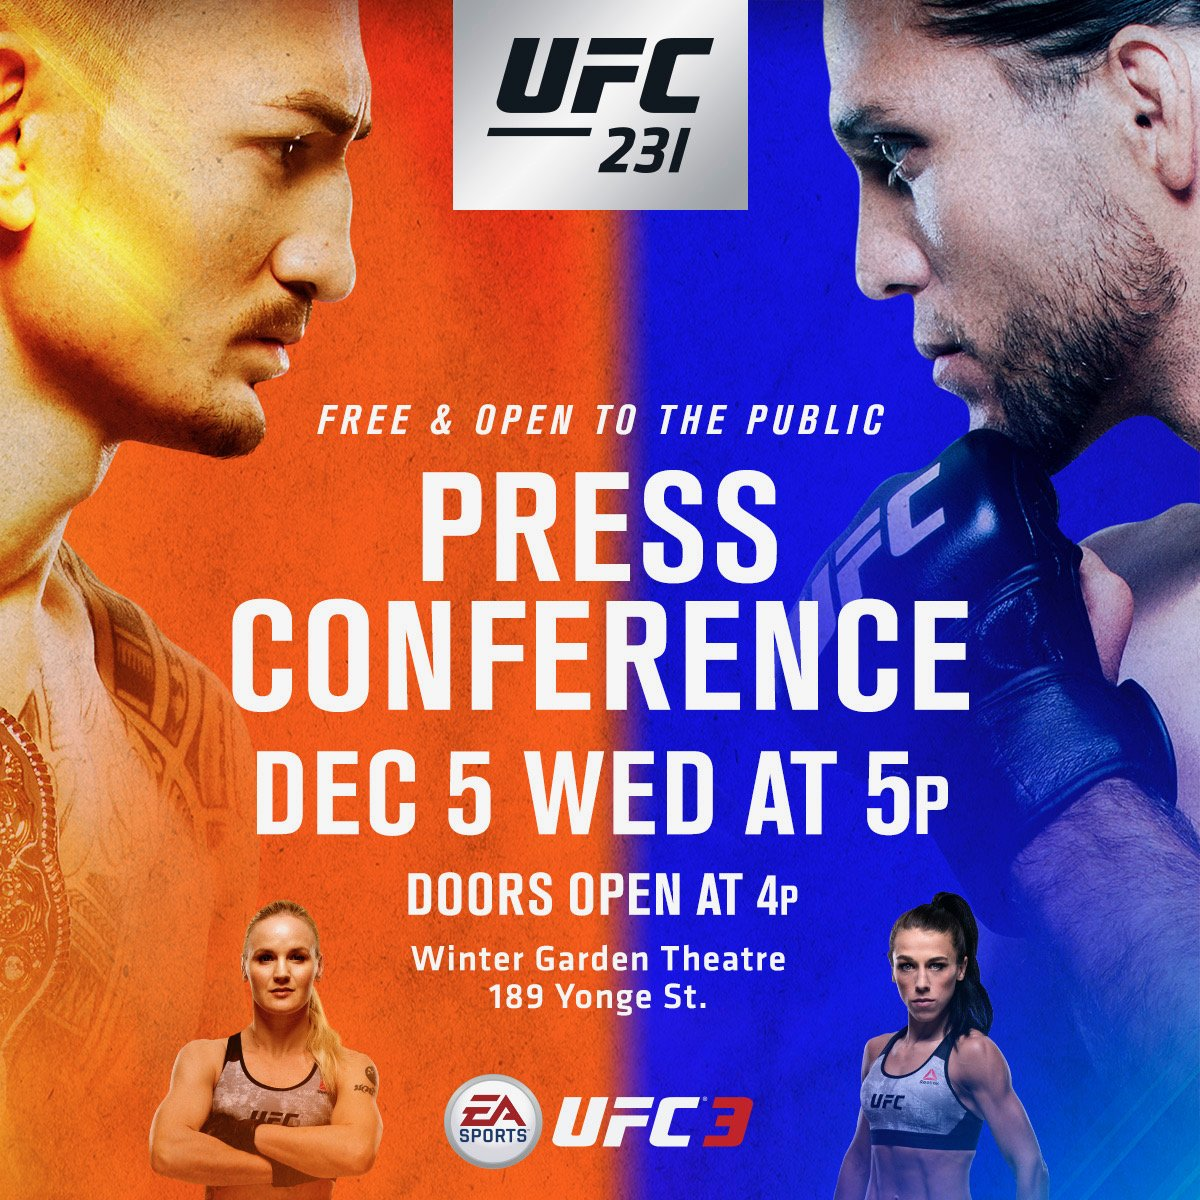 I'm so excited to be back in Toronto!!! Today's press conference with @BlessedMMA vs @BrianTcity and @BulletValentina vs @joannamma is FREE and OPEN to the public at Winter Garden Theatre! See u there!